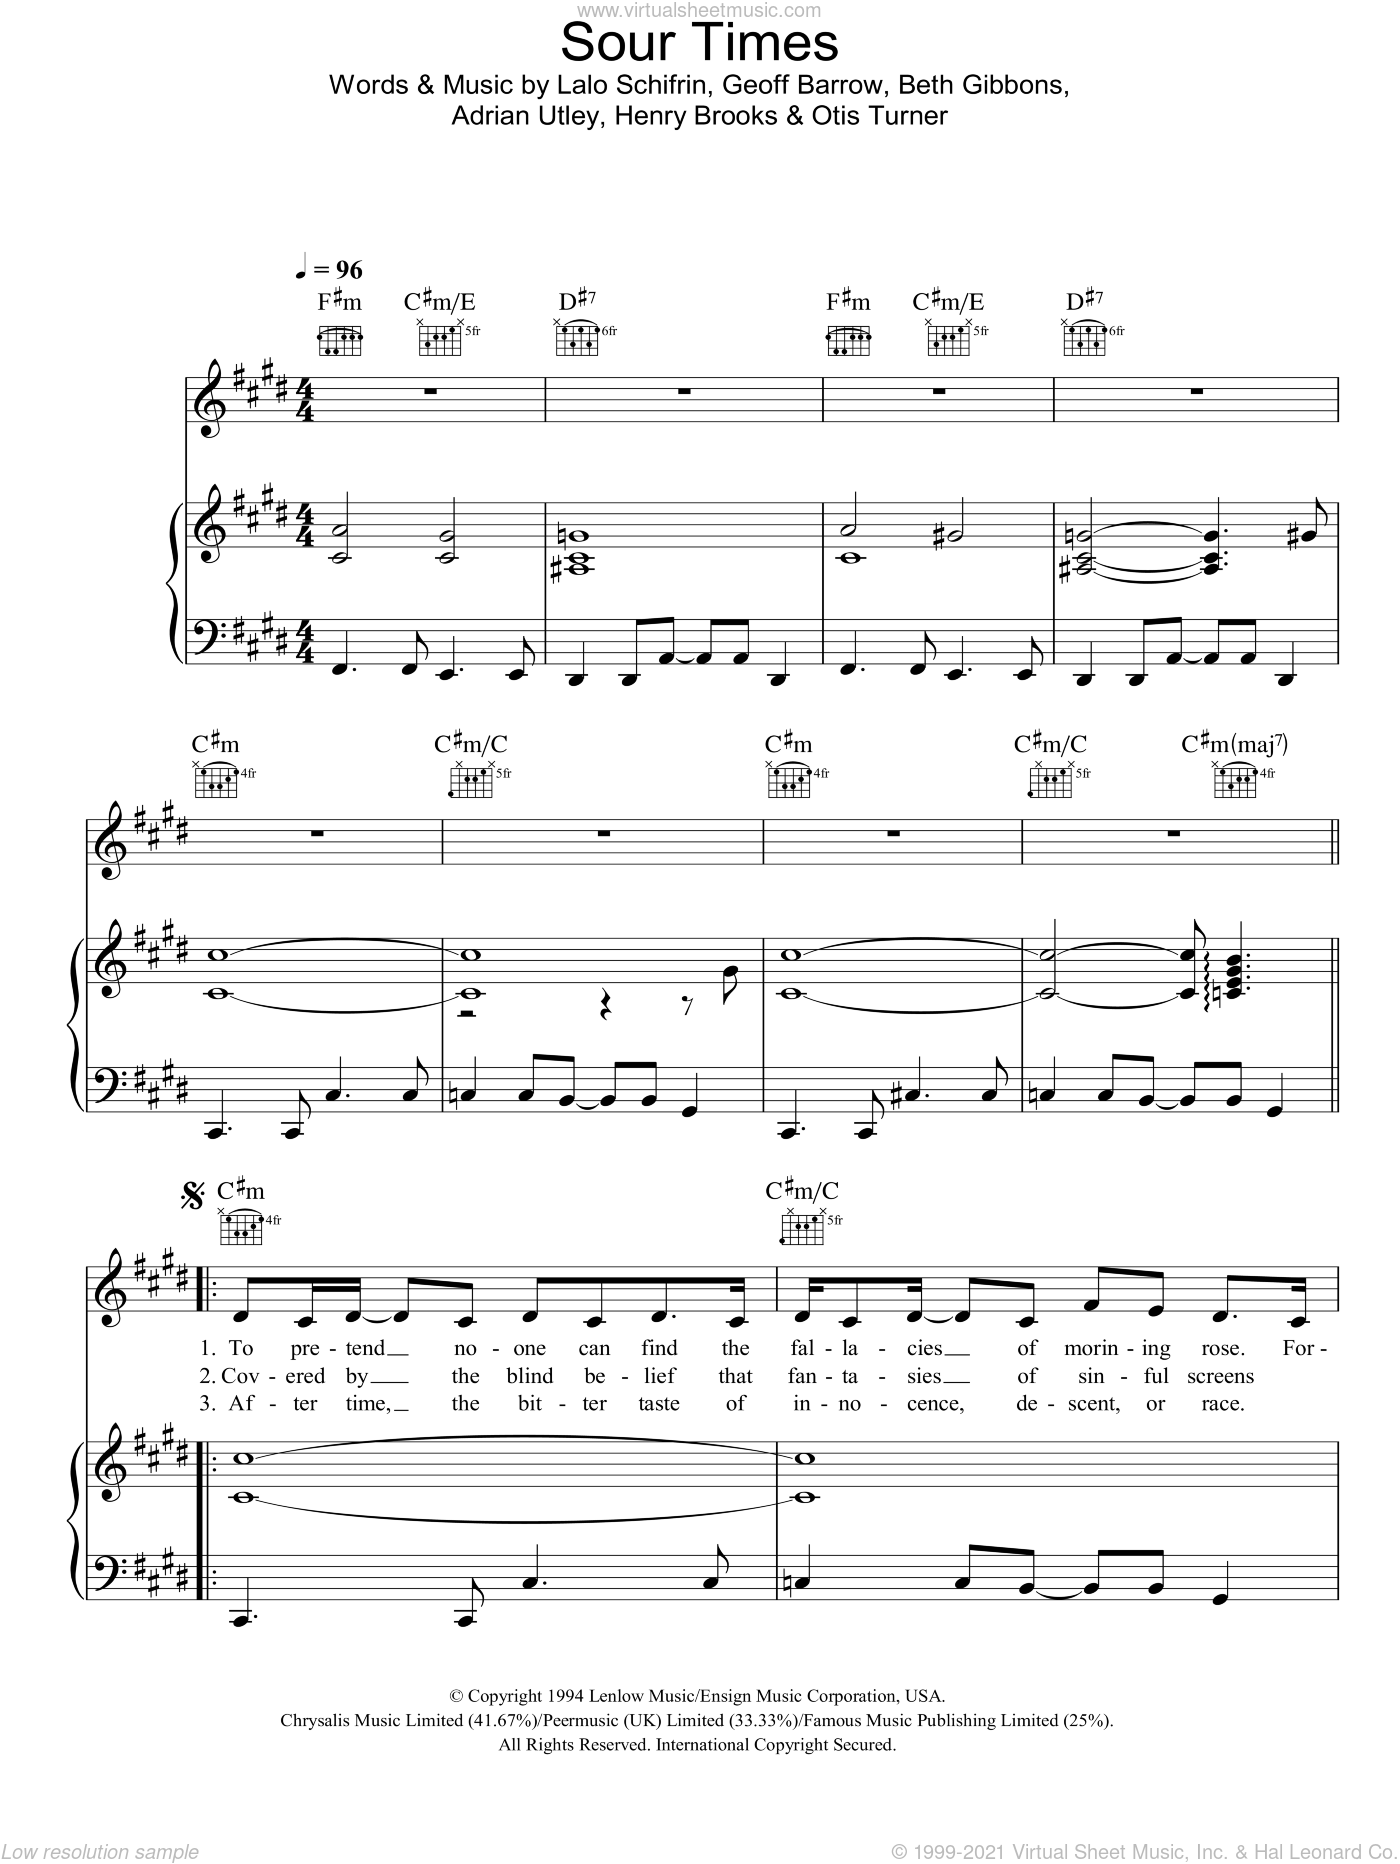 Sour Times sheet music for voice, piano or guitar by Portishead, Adrian Utley, Beth Gibbons, Geoff Barrow, Henry Brooks, Lalo Schifrin and Otis Turner, intermediate skill level